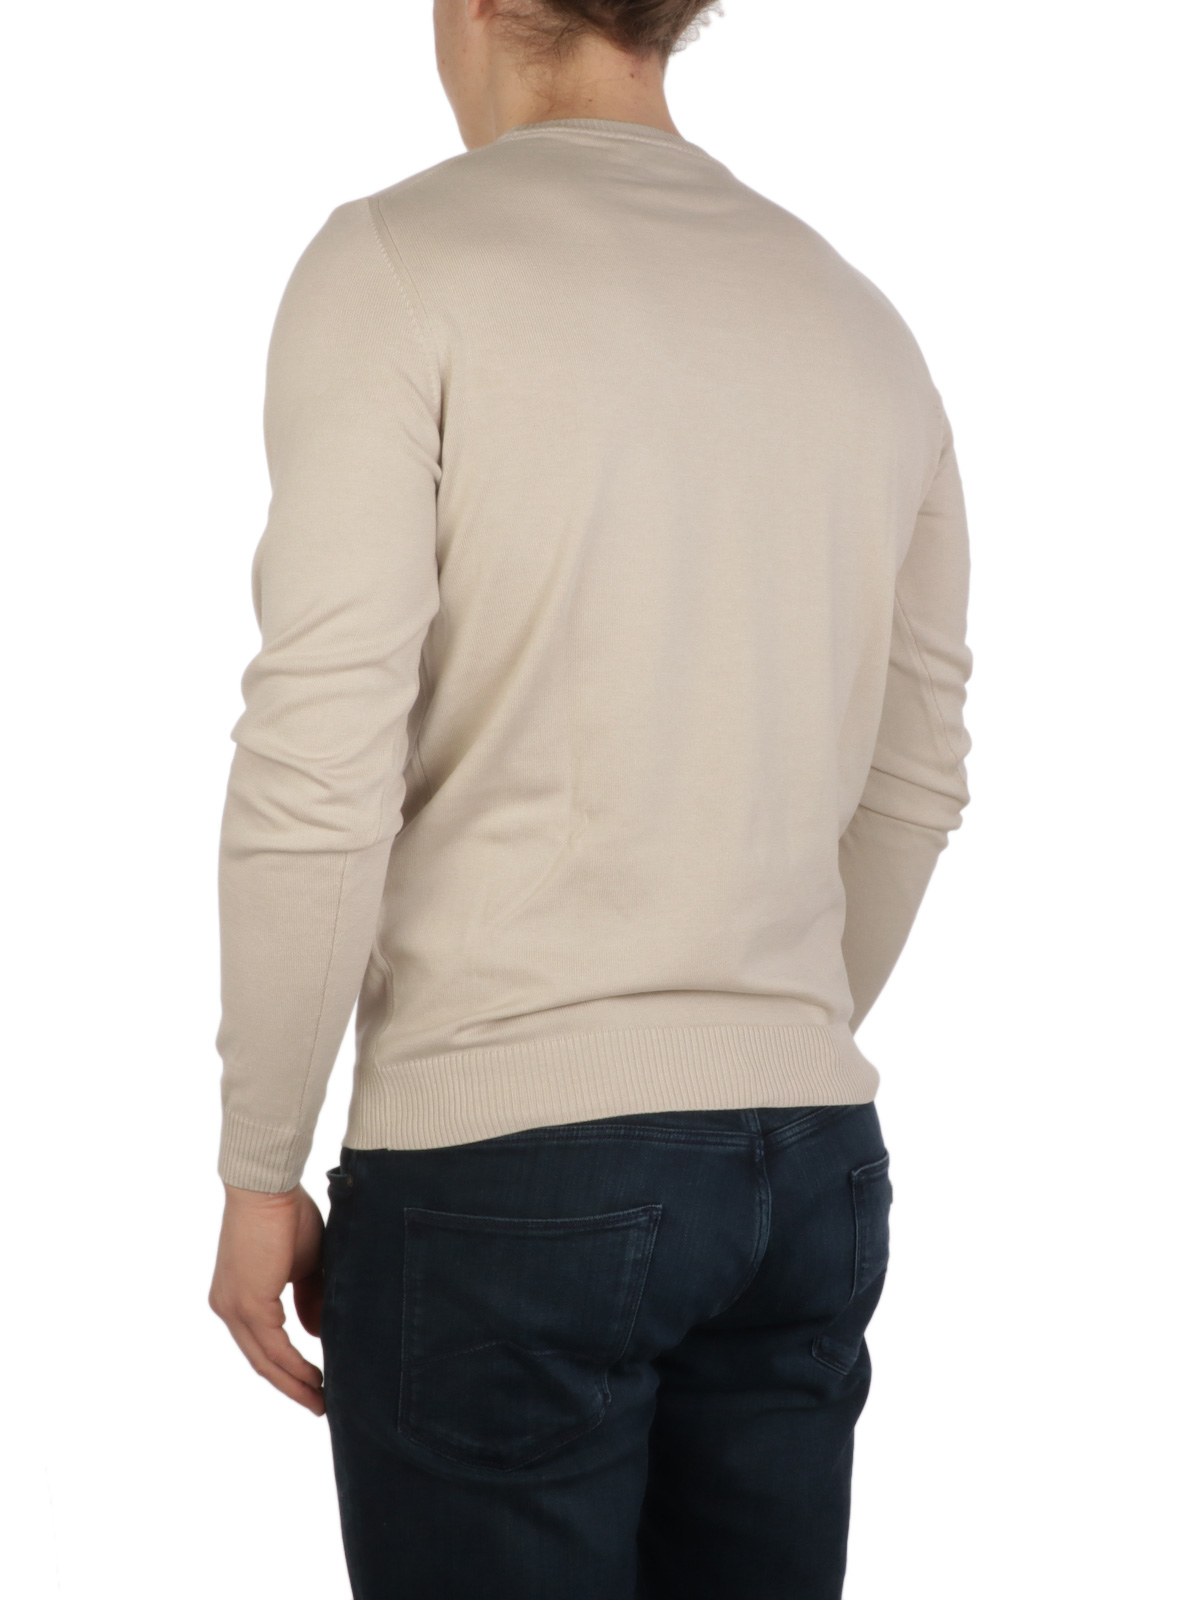 Picture of BROOKSFIELD | Men's Cotton Sweater